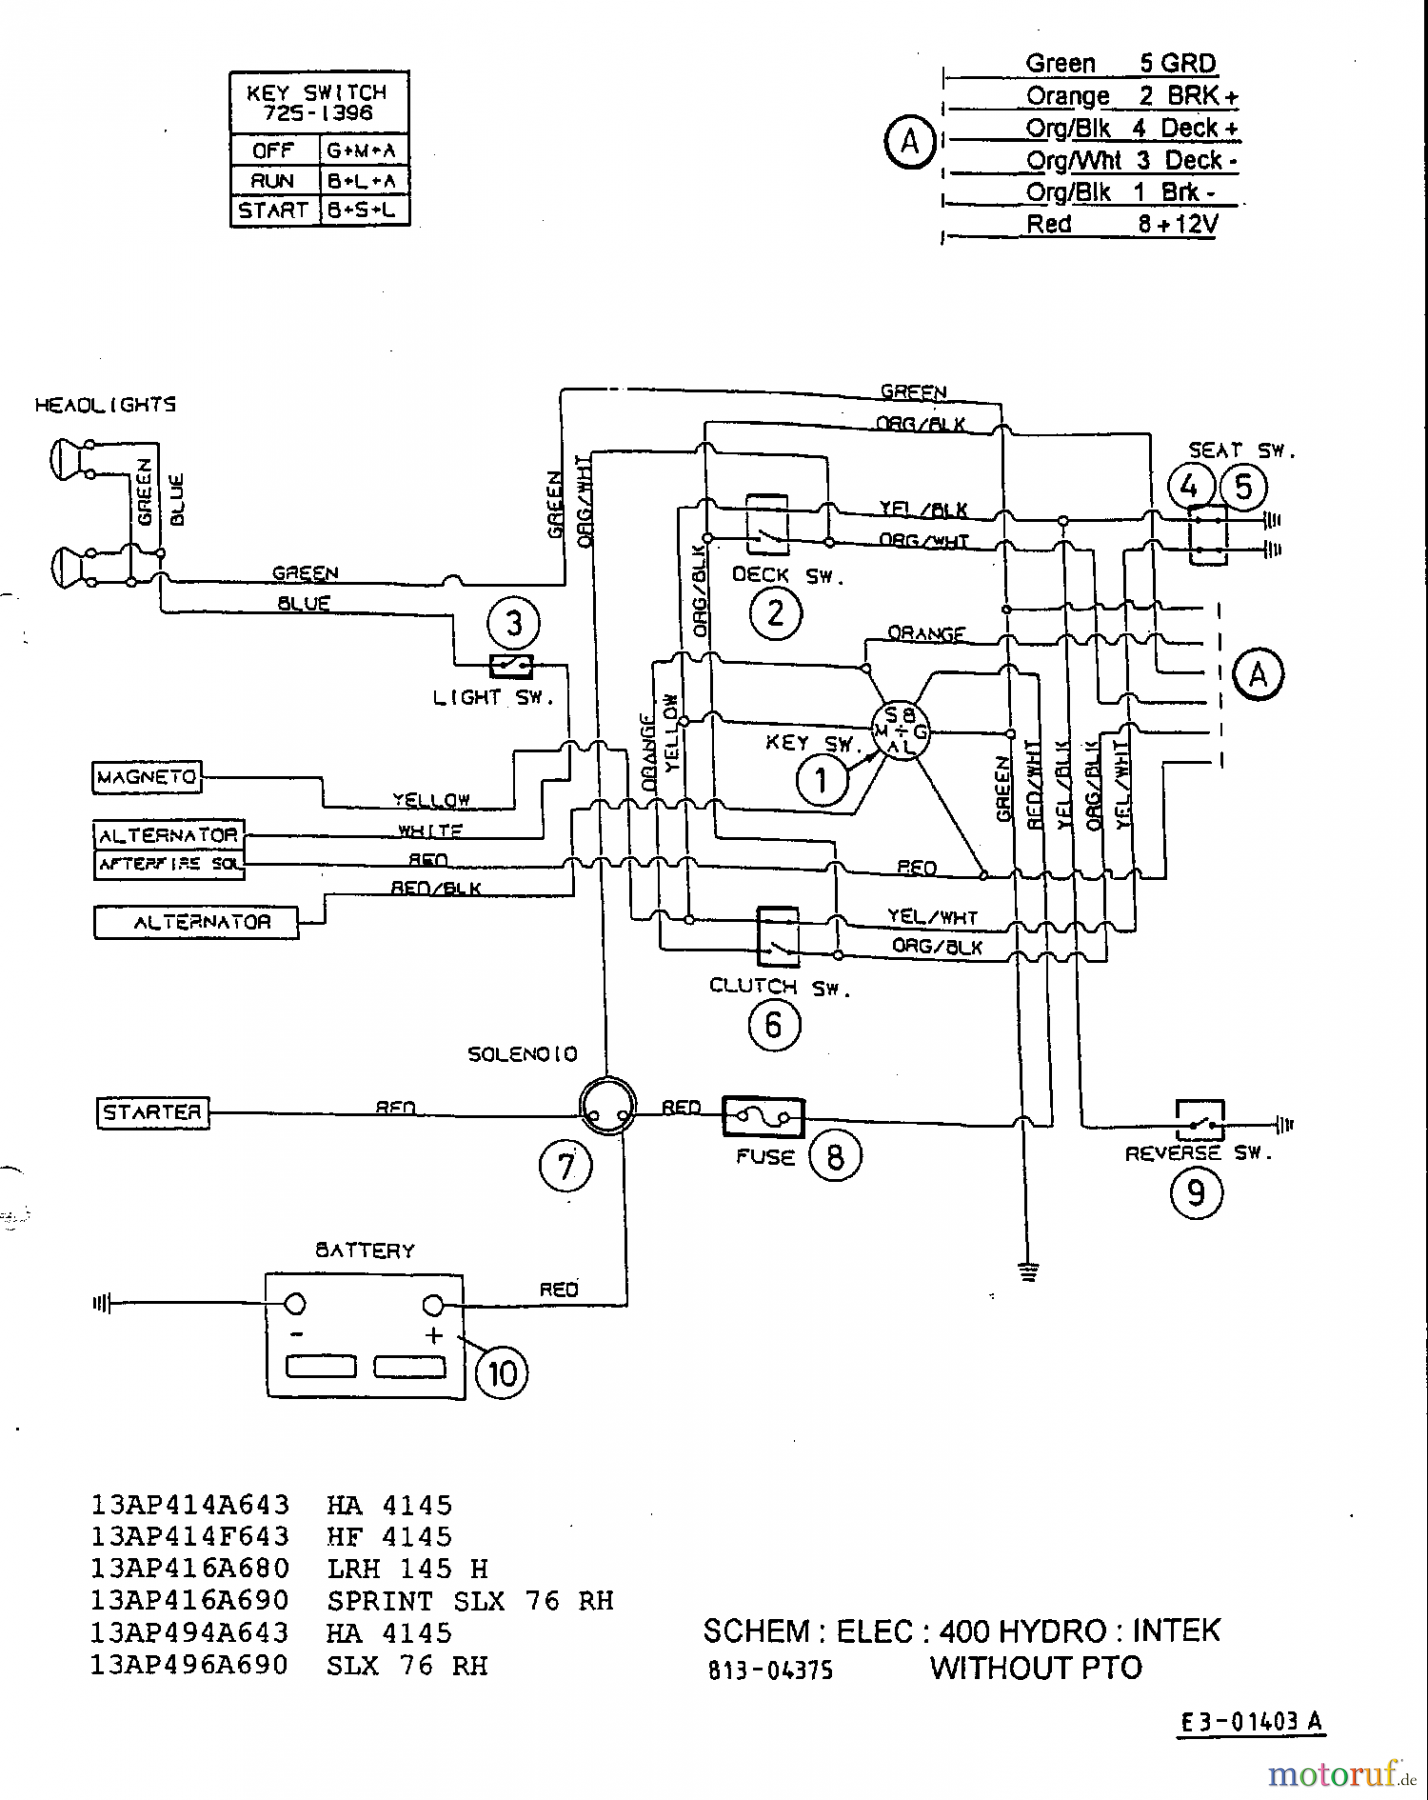 mtd wiring diagram manual wiring schematic diagram 12 lawn mower 5 prong ignition switch wiring diagram mtd lawn mower parts manual